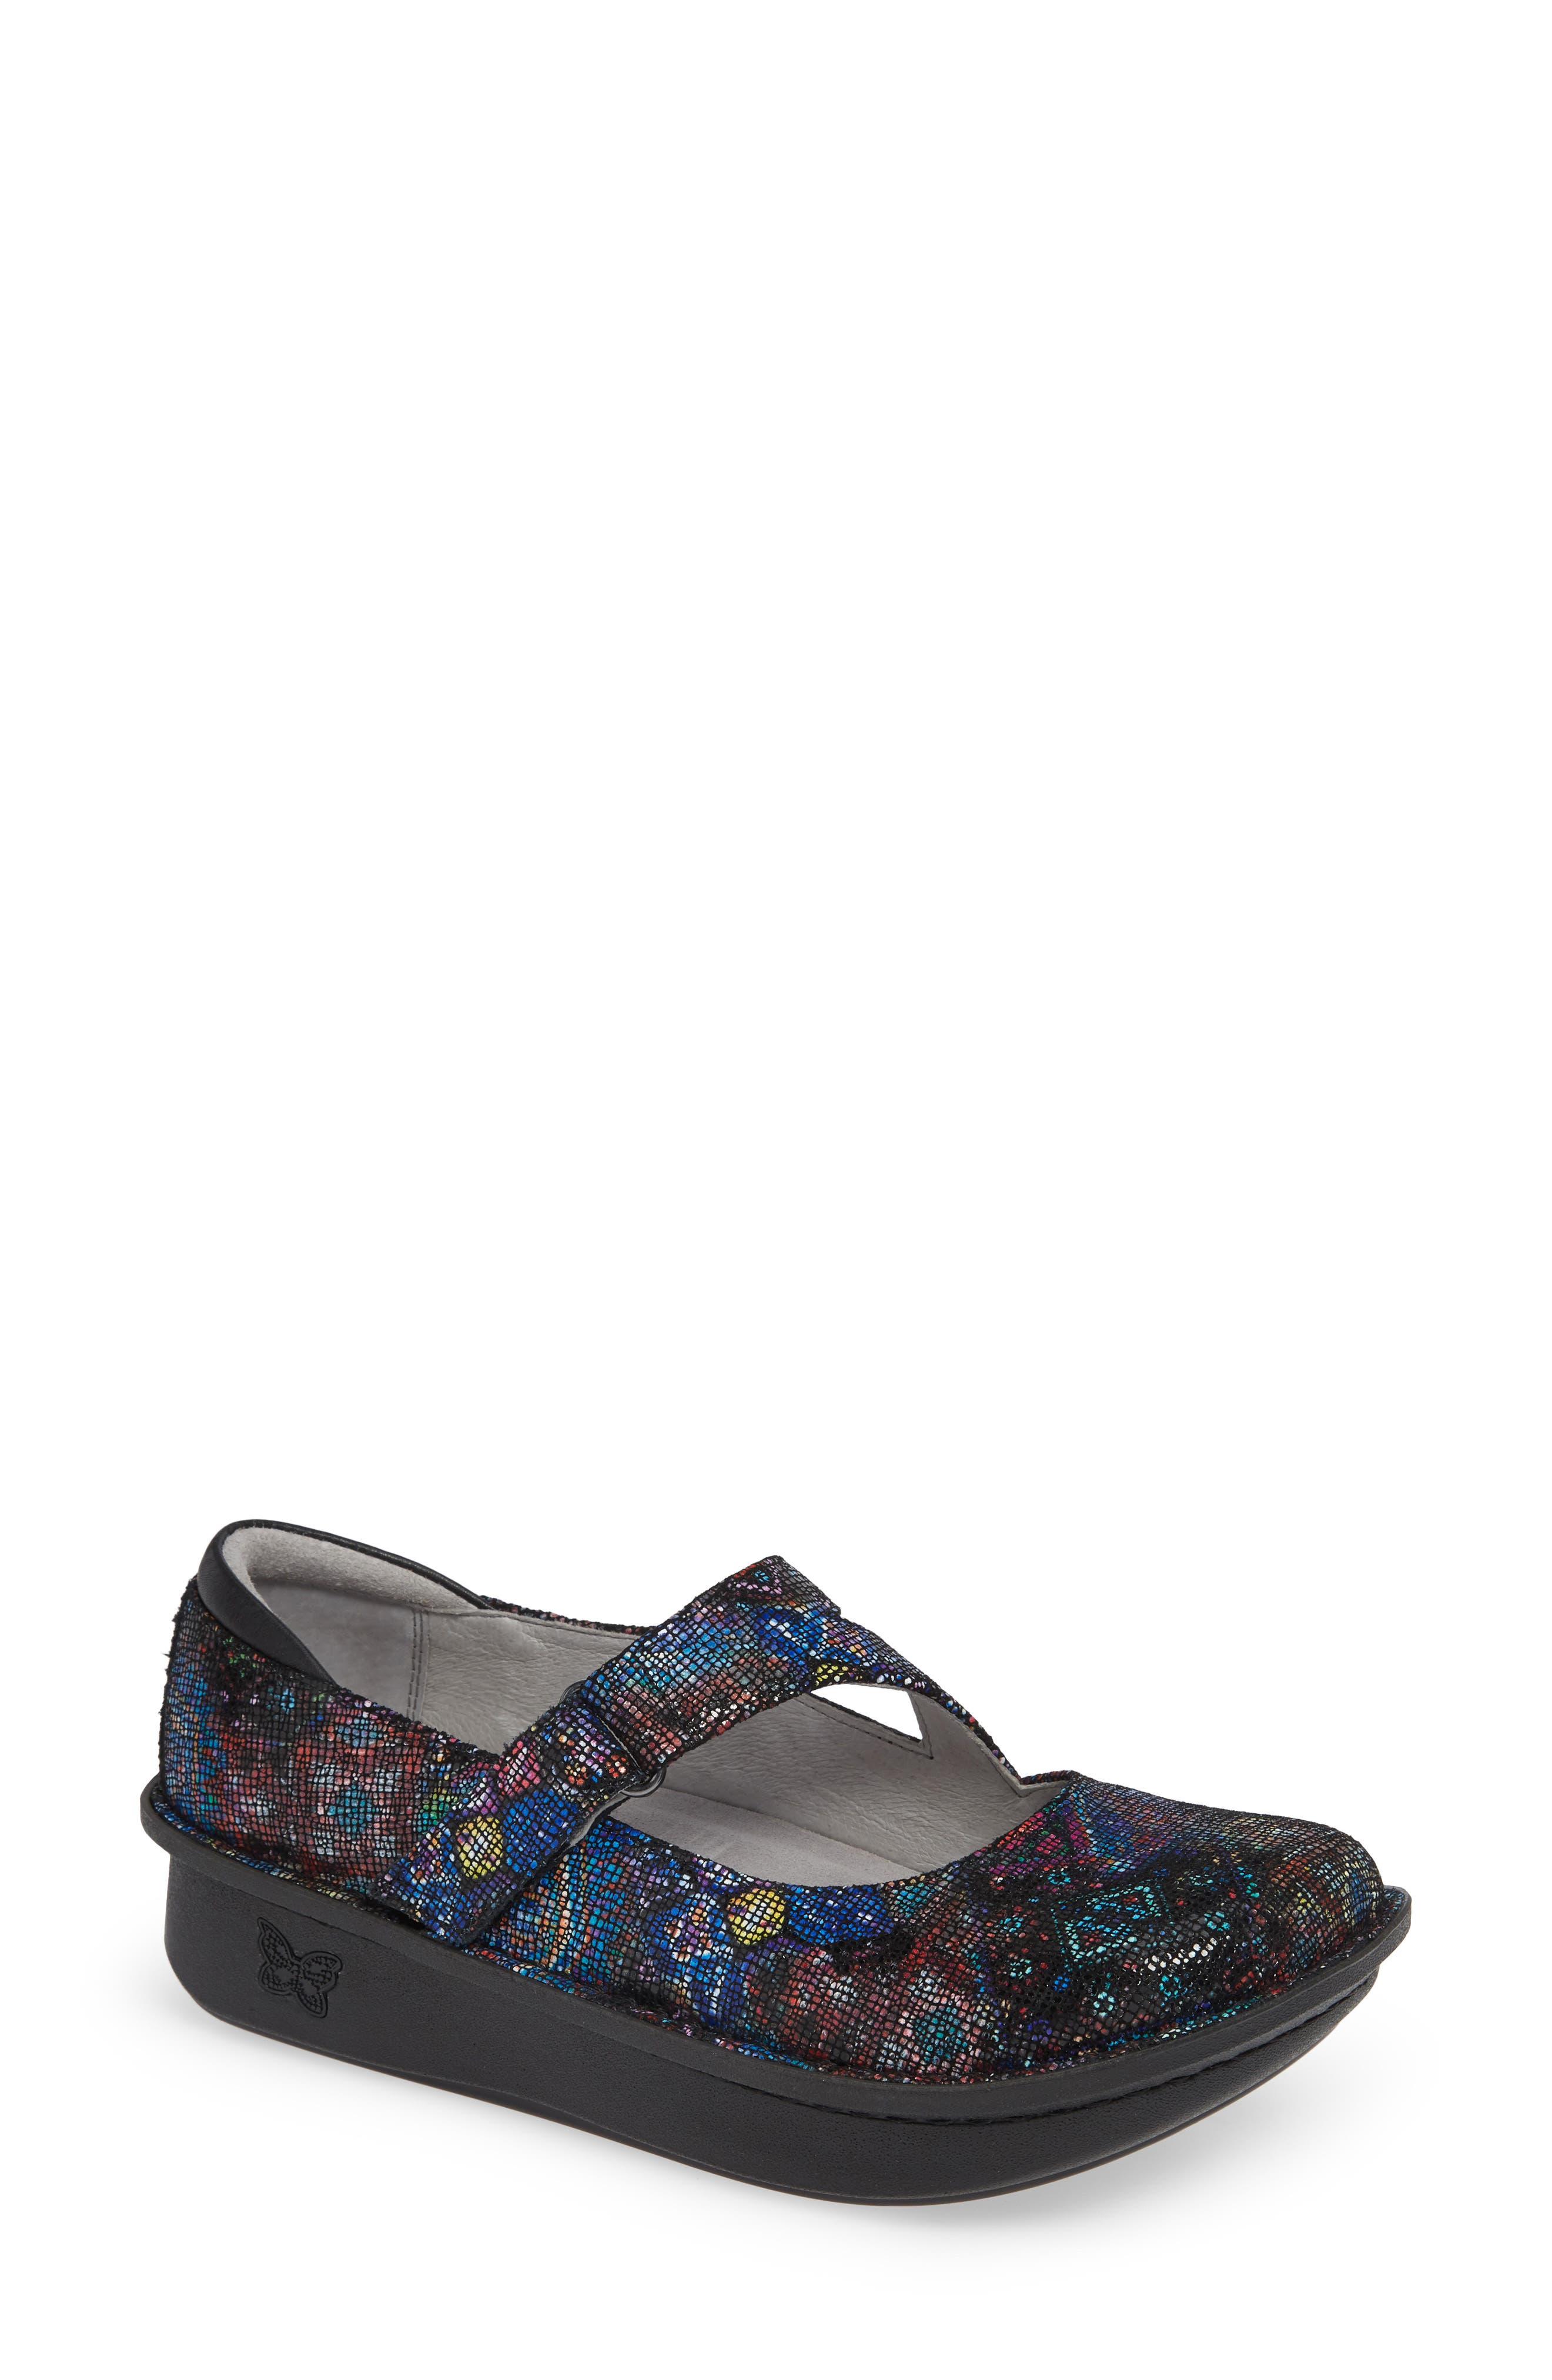 ALEGRIA,                             'Dayna' Slip-On,                             Main thumbnail 1, color,                             BEAUTY BLUR LEATHER